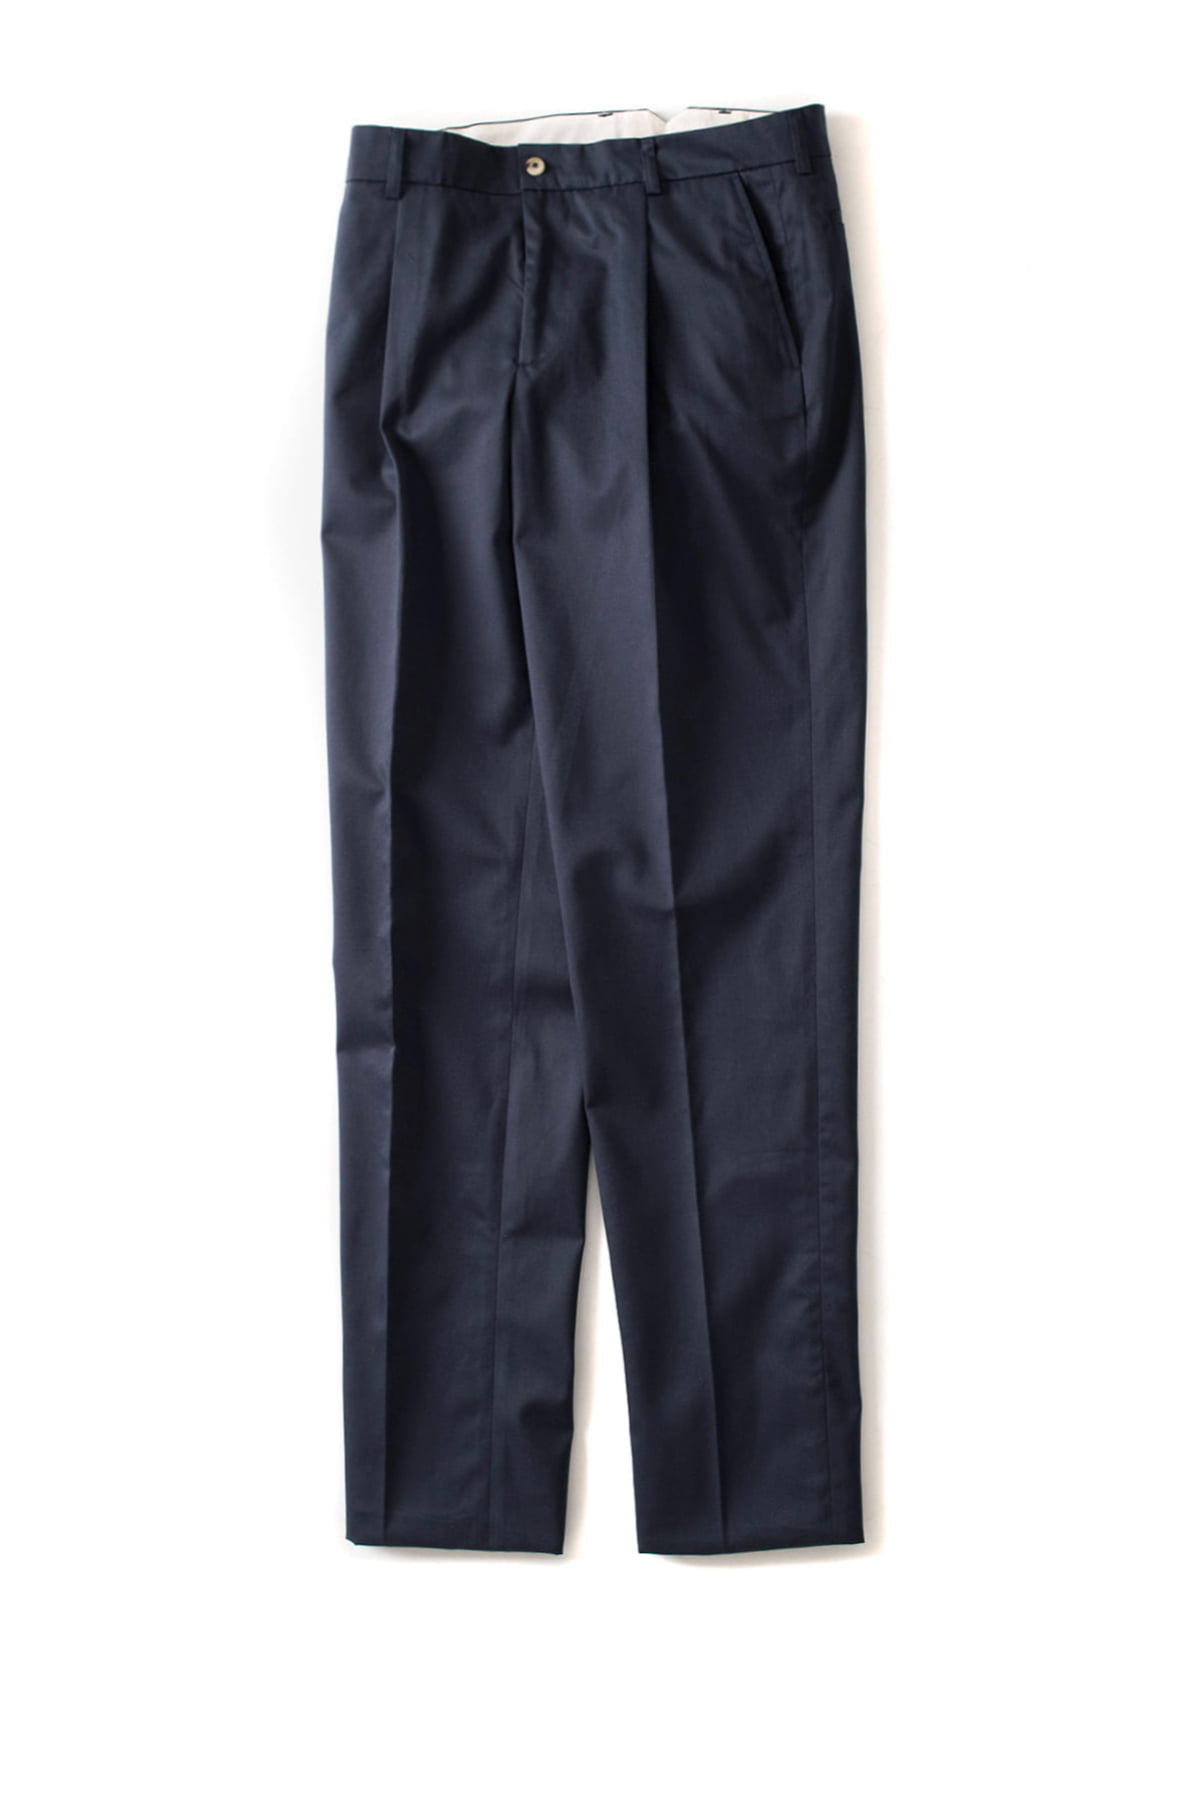 de bonne facture : One Pleat Trousers (Navy)